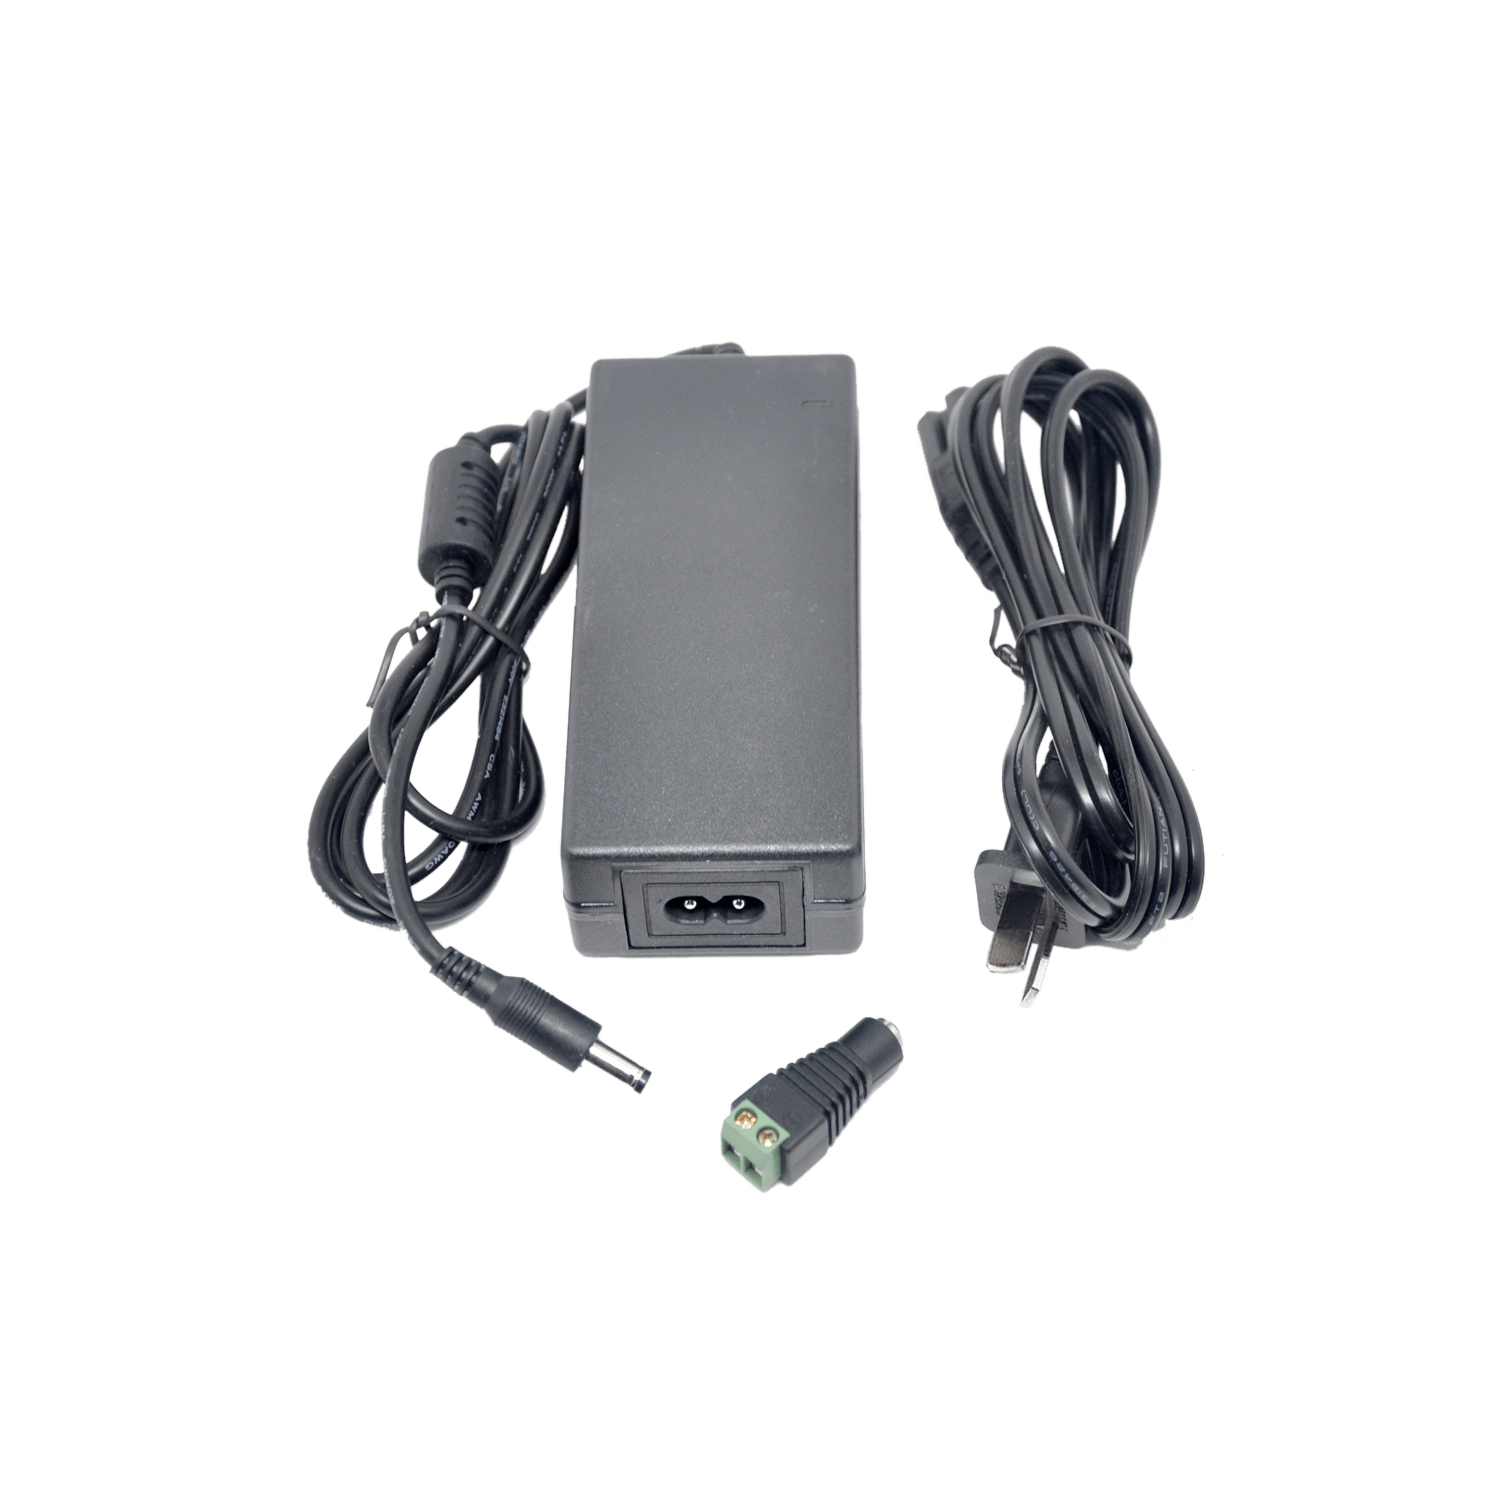 Gantom PowerPak 5000 12V/5A Power Supply